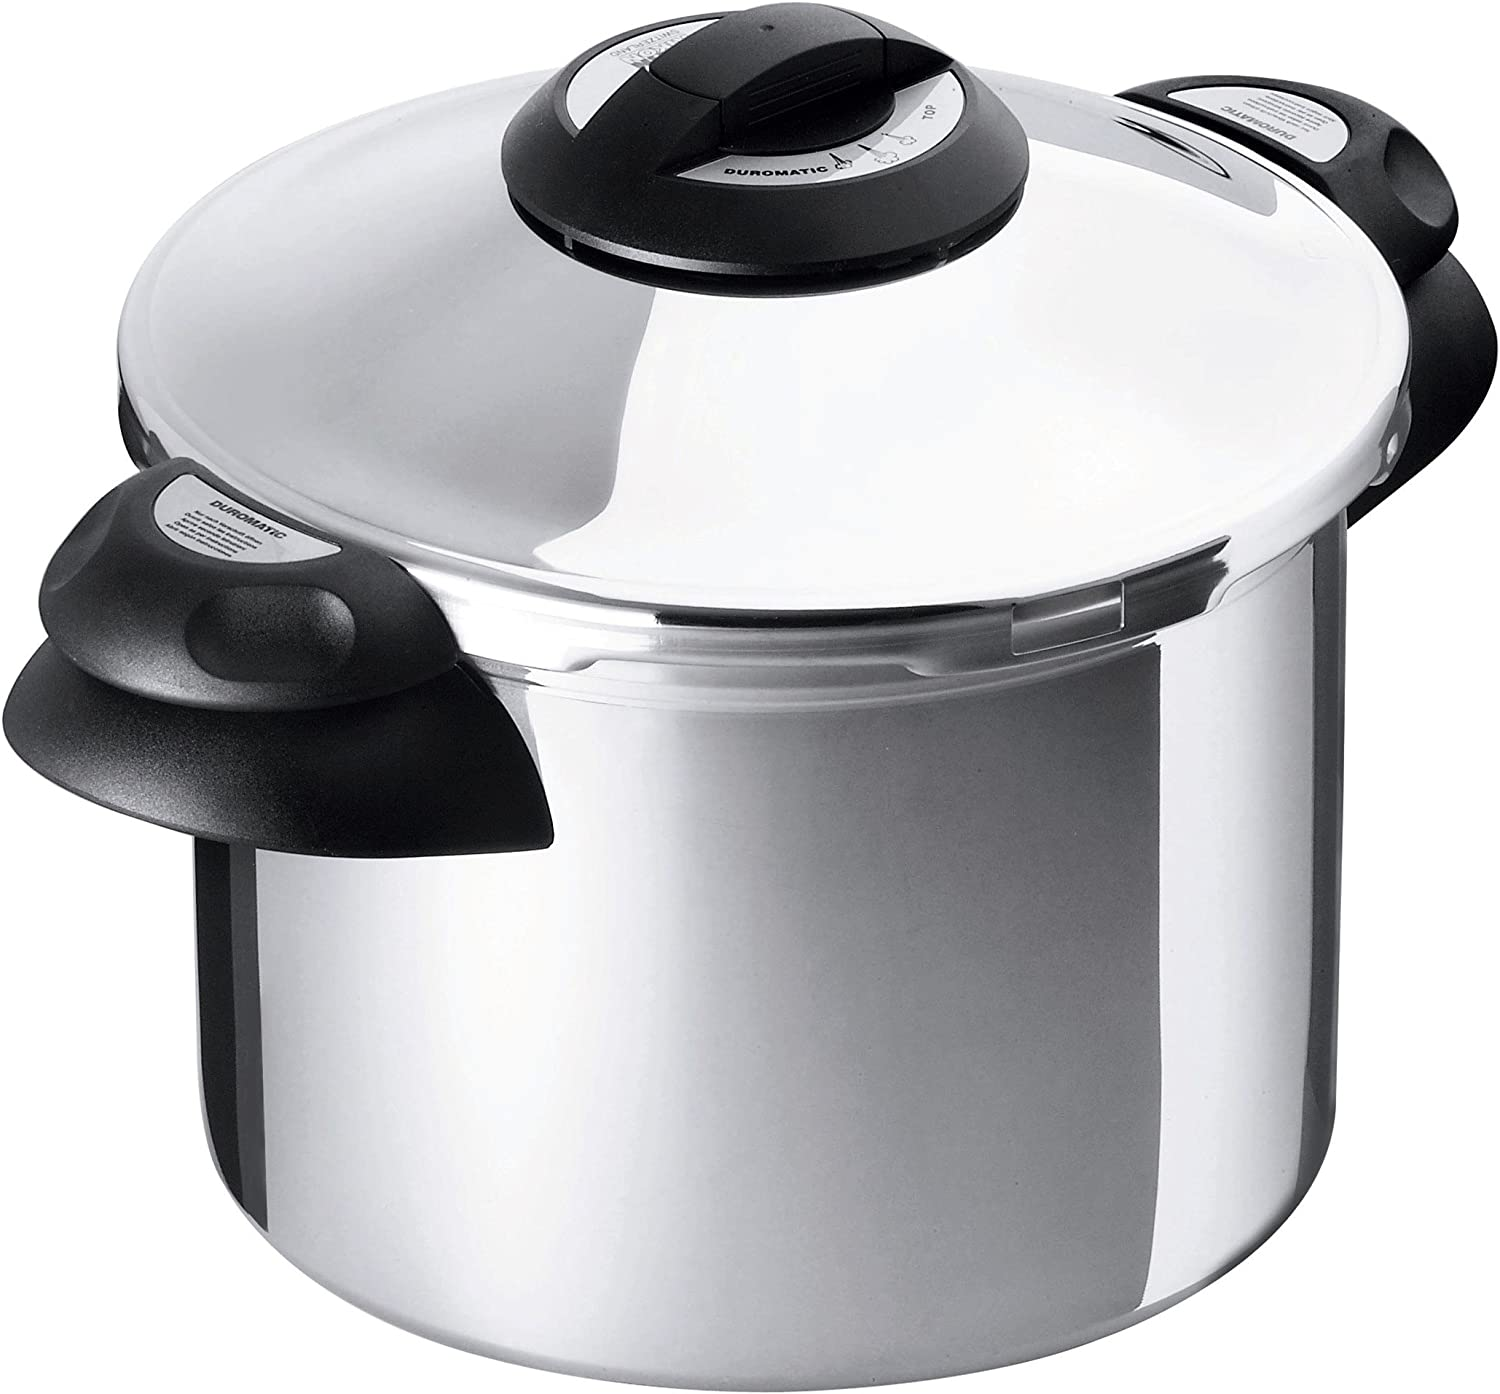 Kuhn Rikon Duromatic Top Stainless Steel Pressure Cooker with Side Grips, 4 Litre / 24 cm